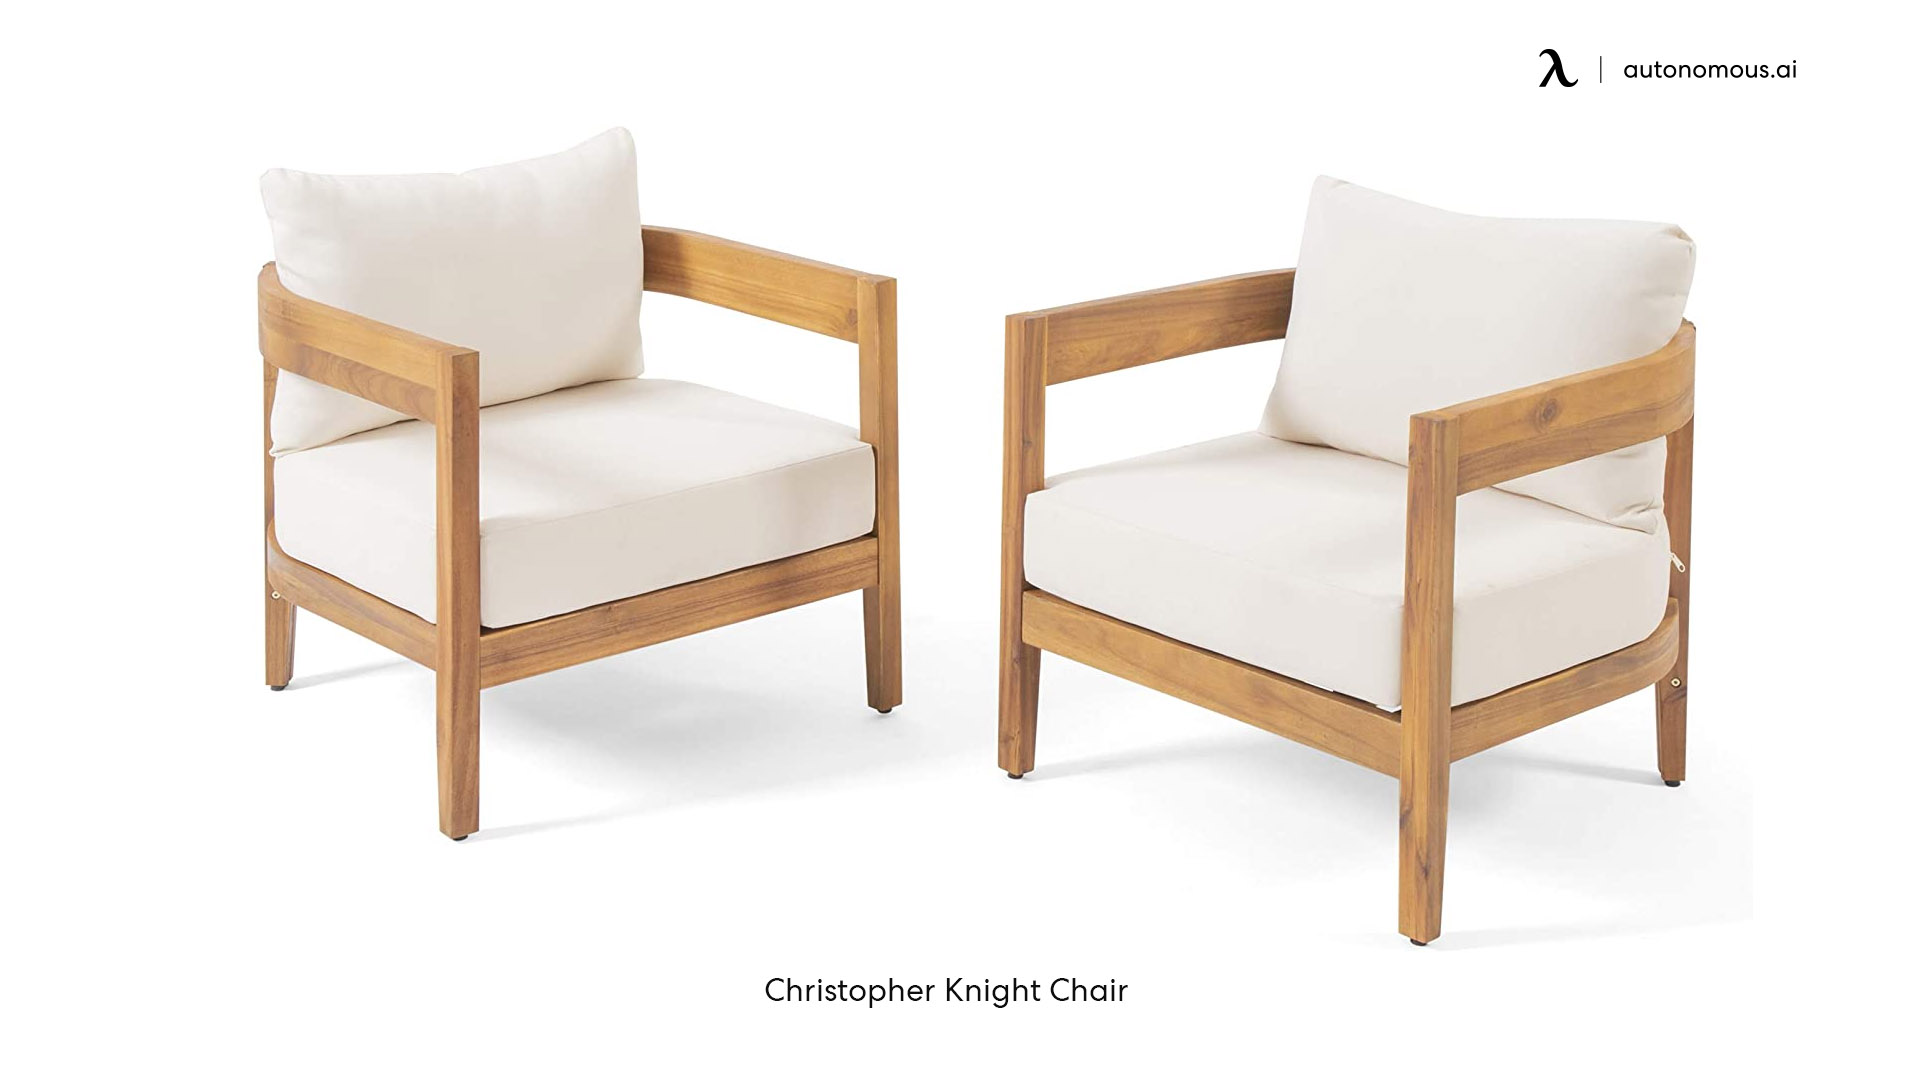 Christopher knight chair